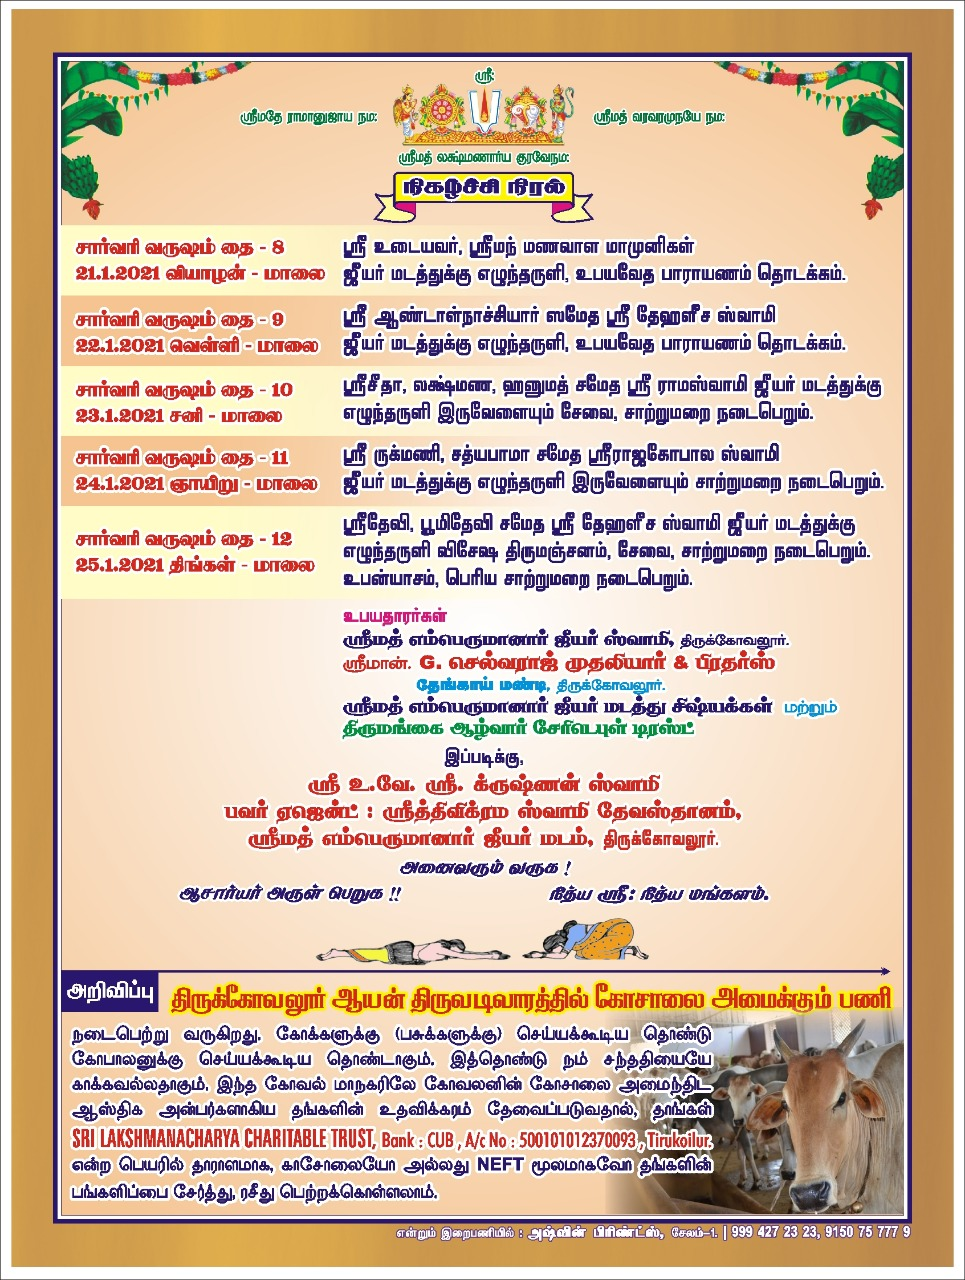 Thirukovalur Srimath Onnana Emperumanar Jeeyar Swamigal 568 Thirunakshatram Celebrations Invitation 2